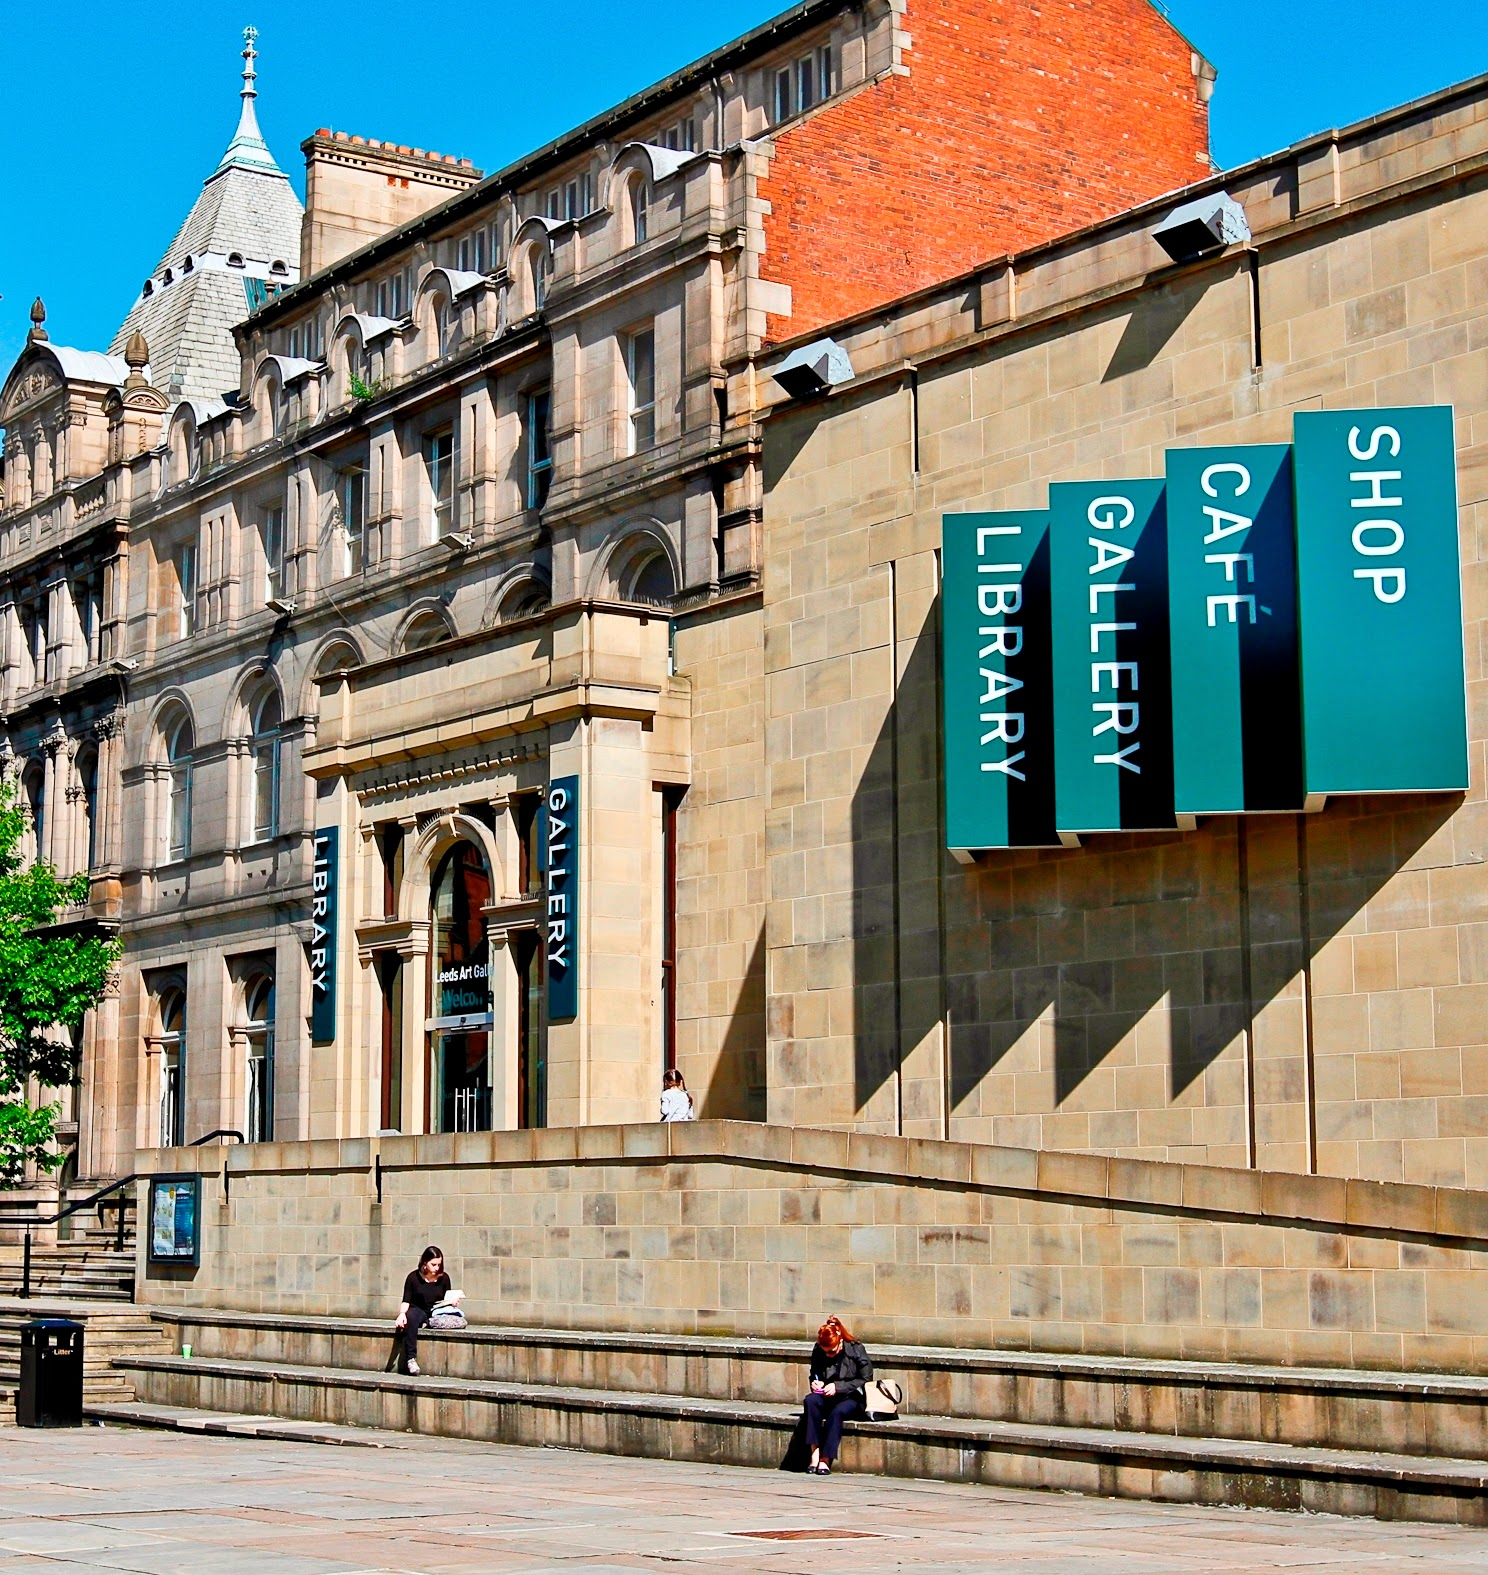 Heritage Open Days To Be Celebrated At Leeds Museums And Galleries